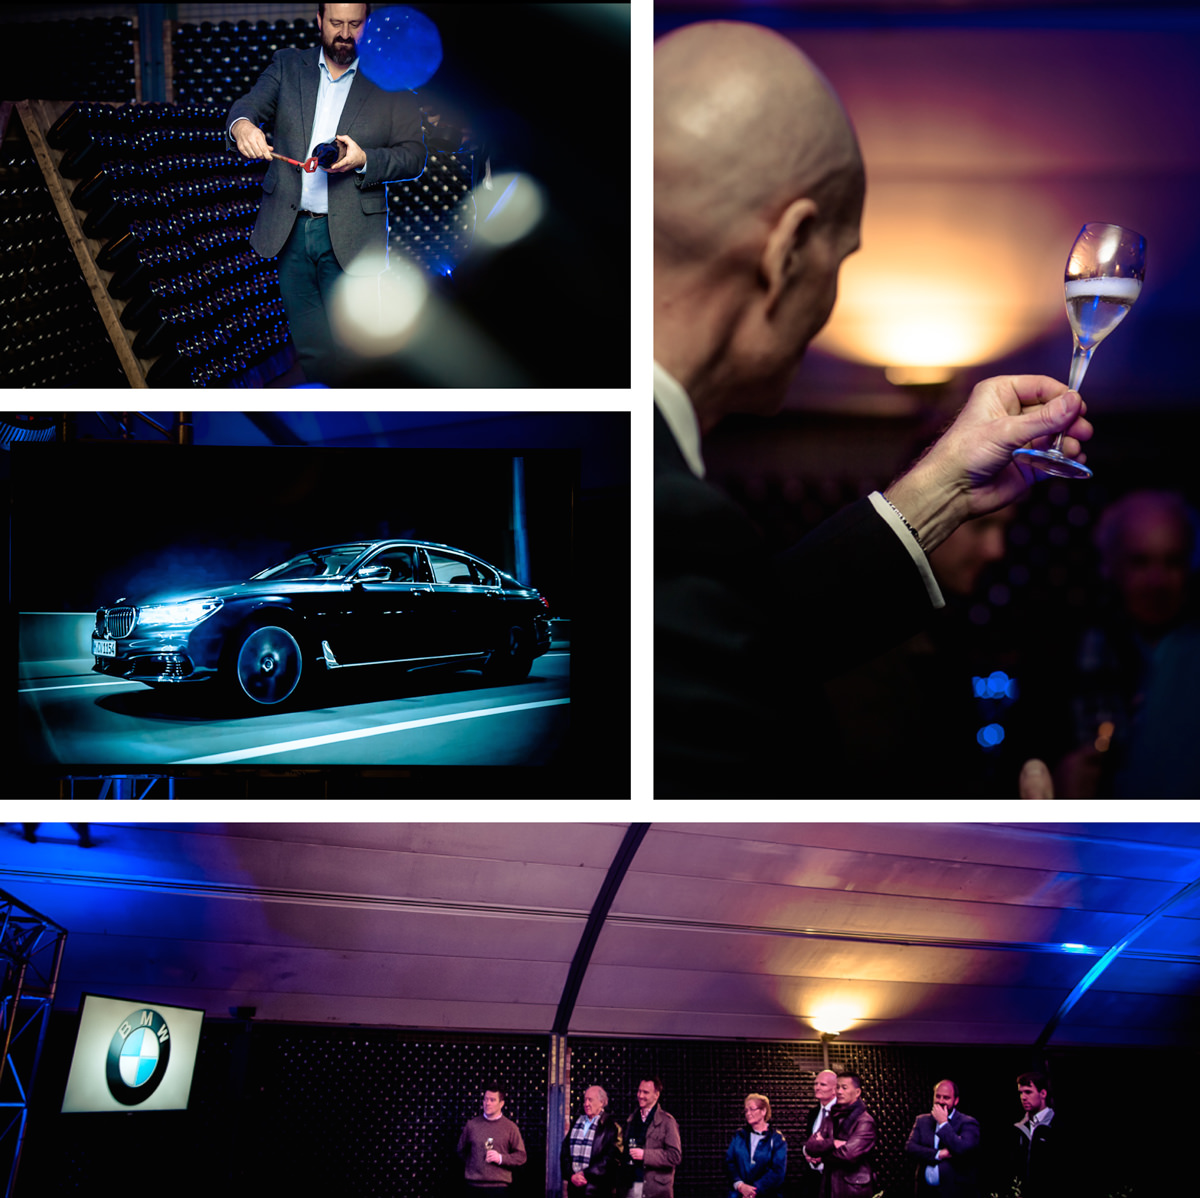 melbourne events - BMW